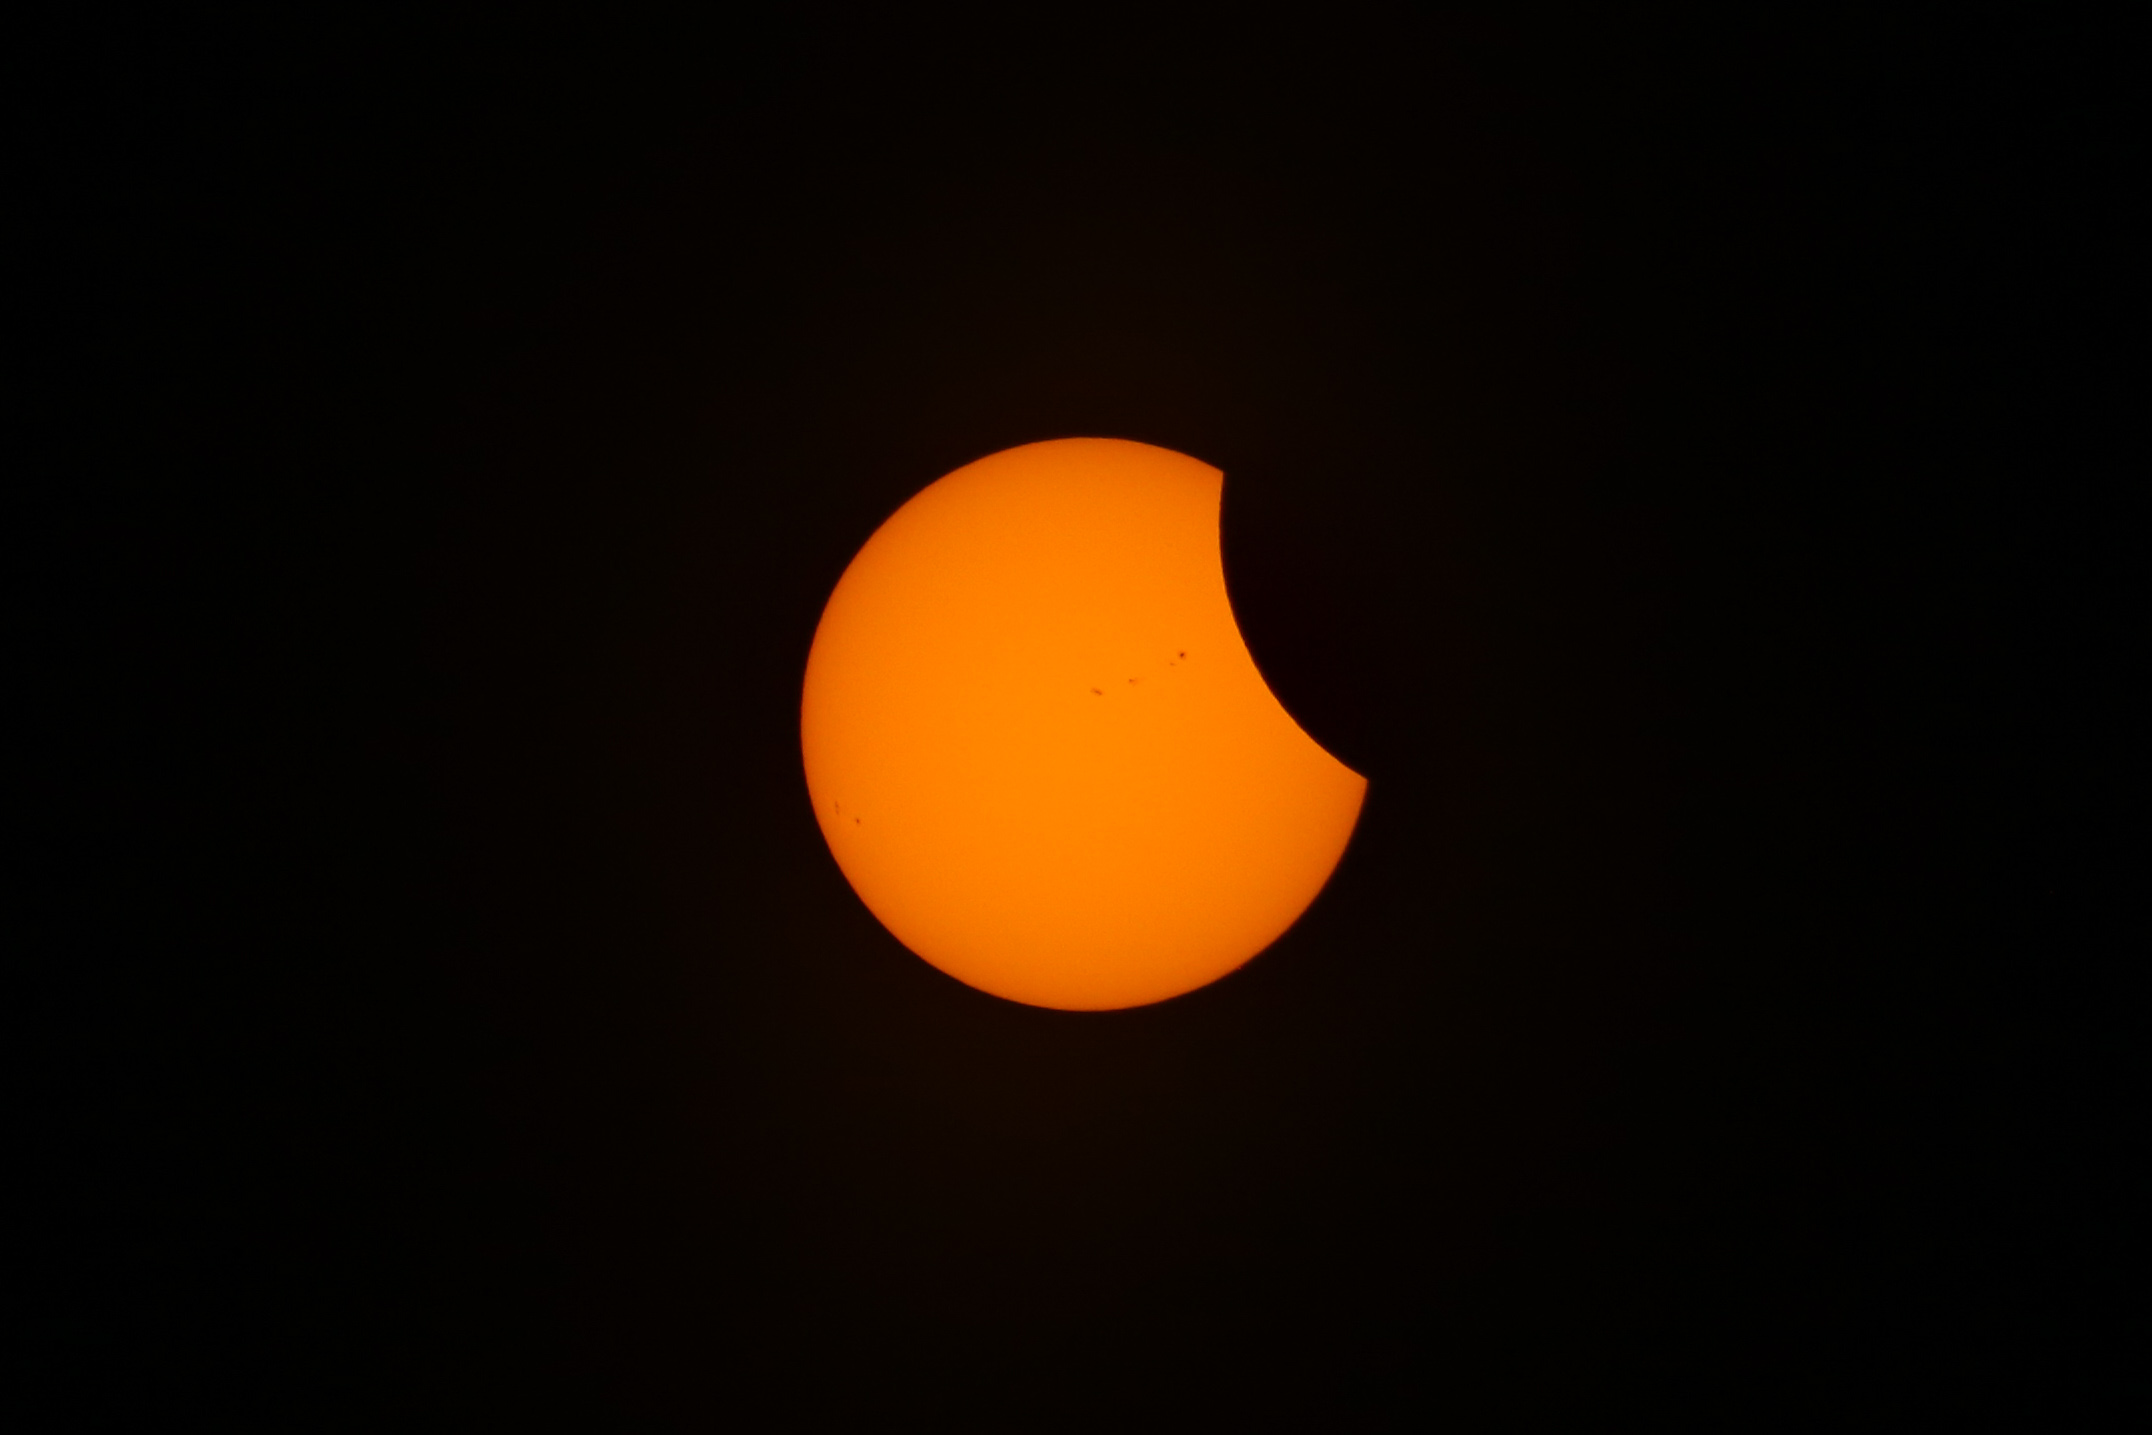 Partial Solar eclipse image in Durham NC 2017. Small portion of the moon is cutting into the sun on the right.